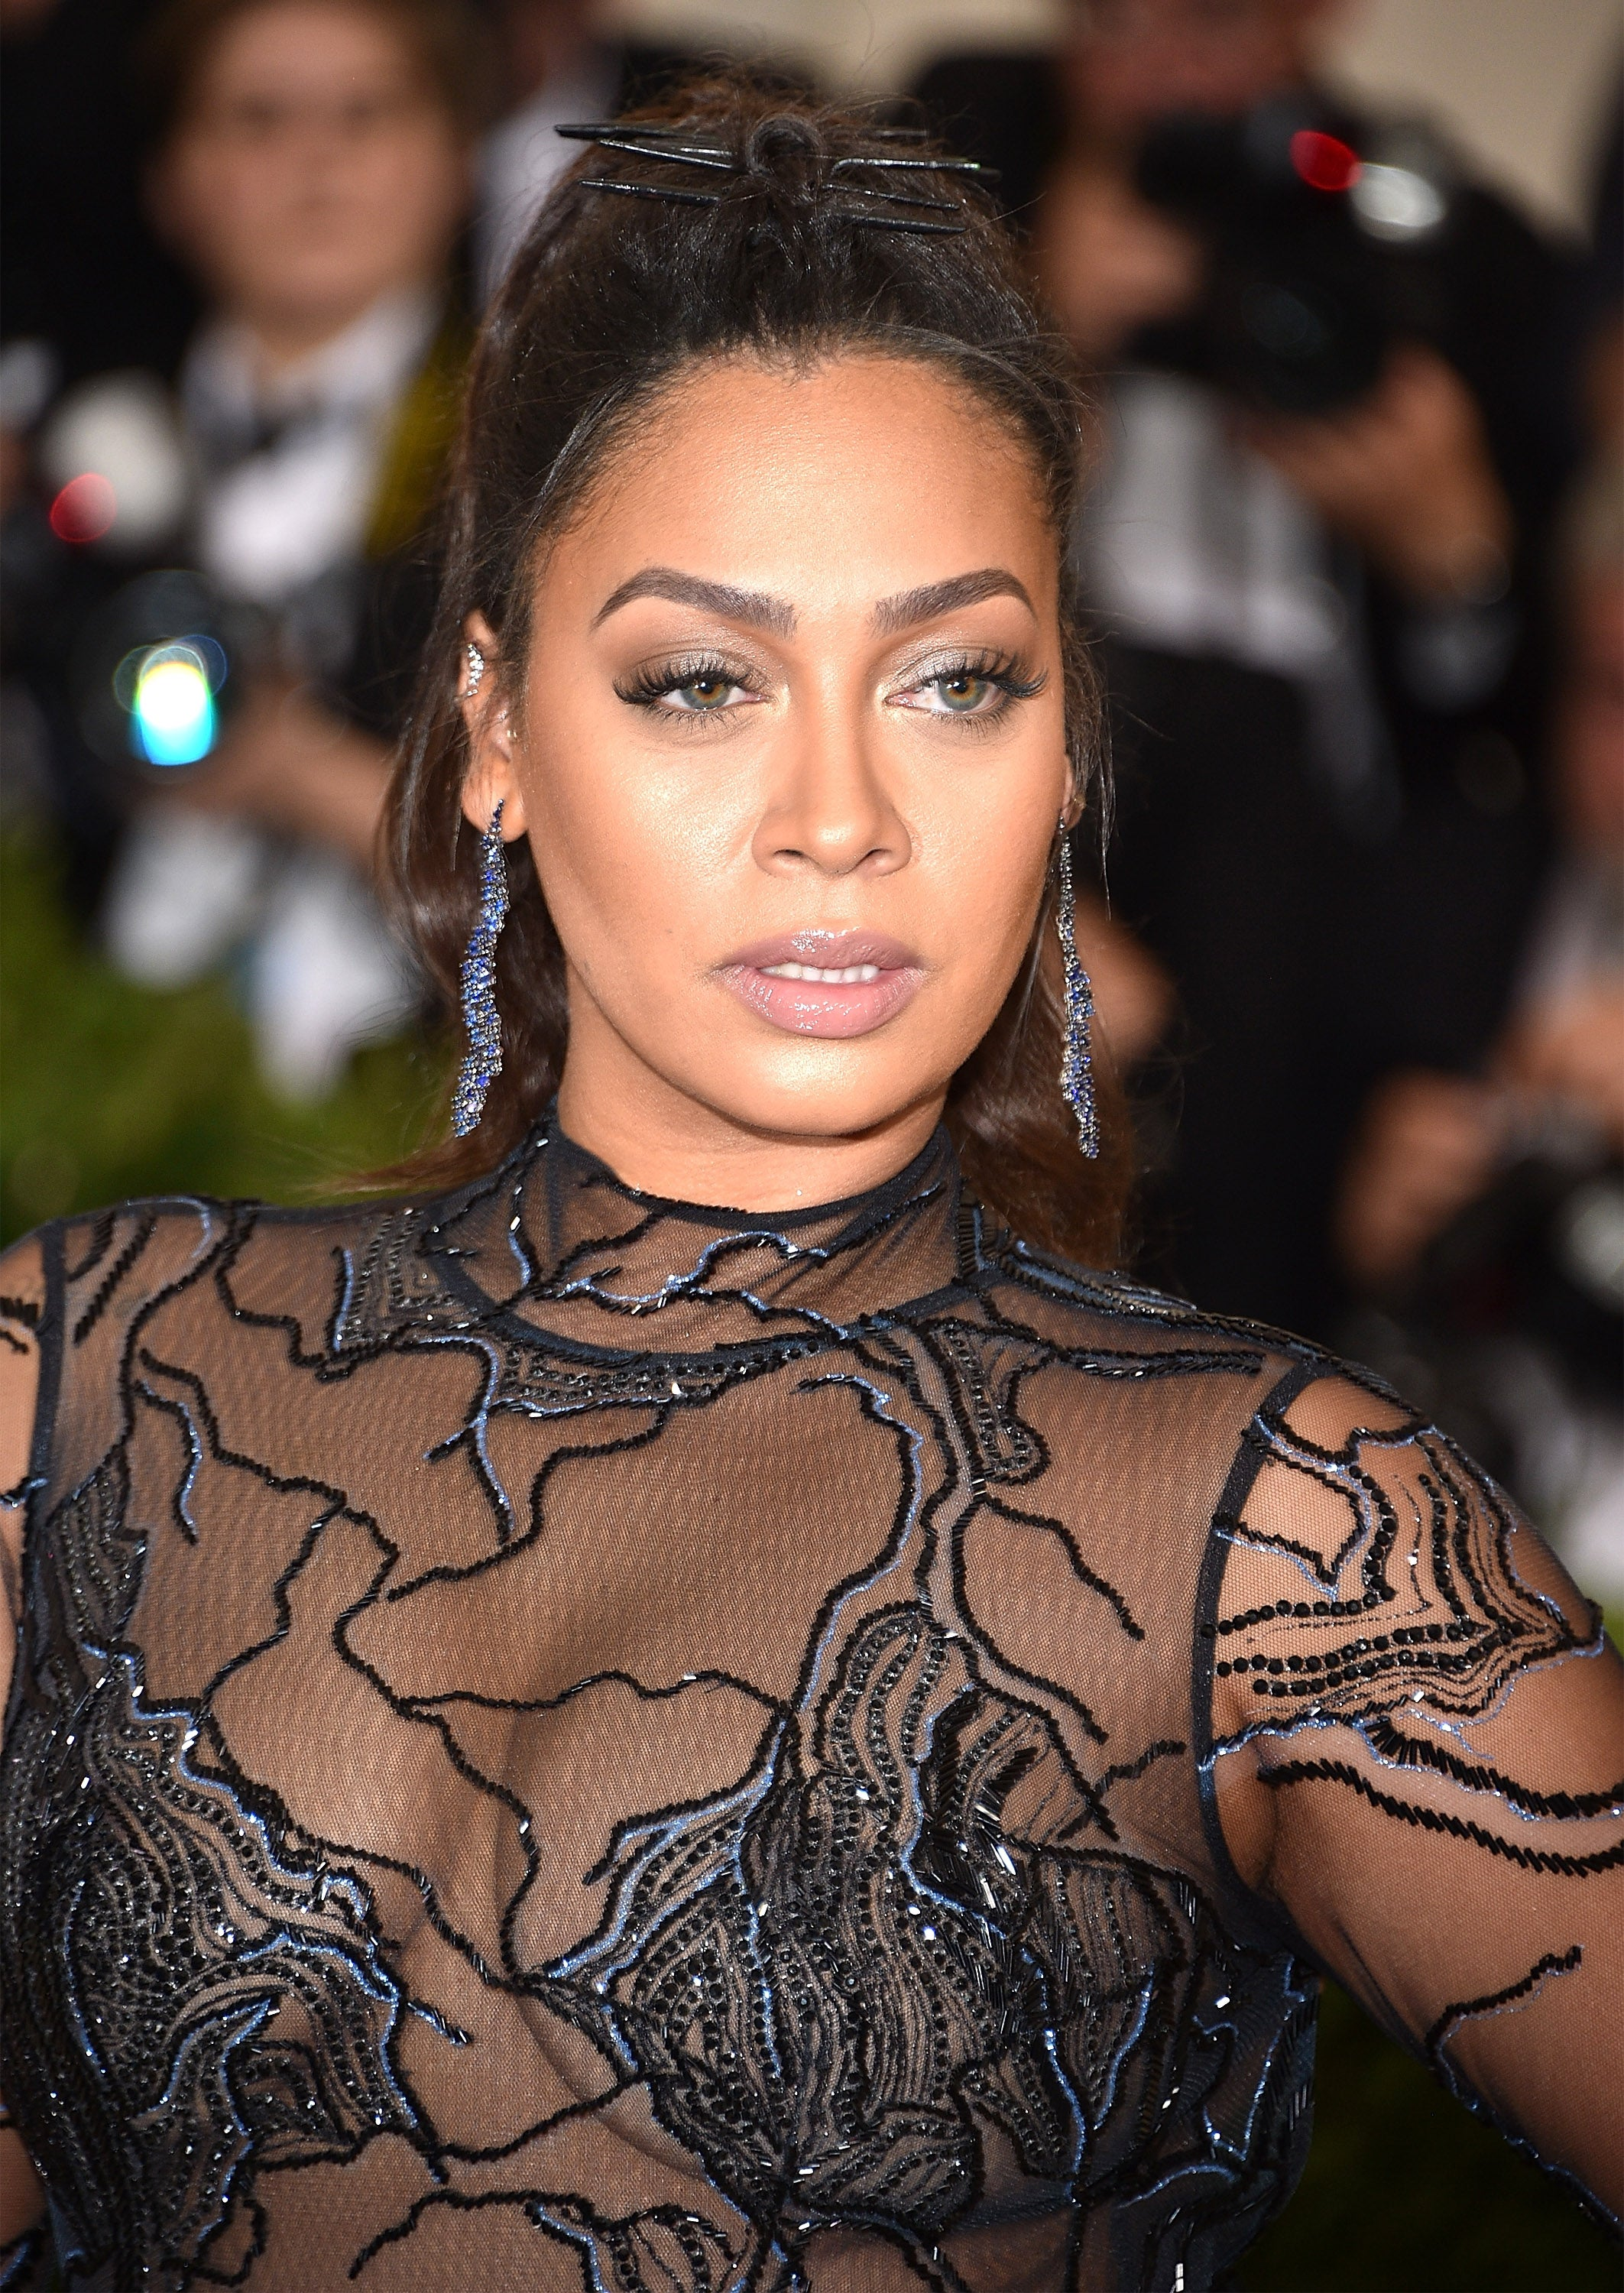 La La Anthony And Other Celebs Plead For Puerto Rico Relief